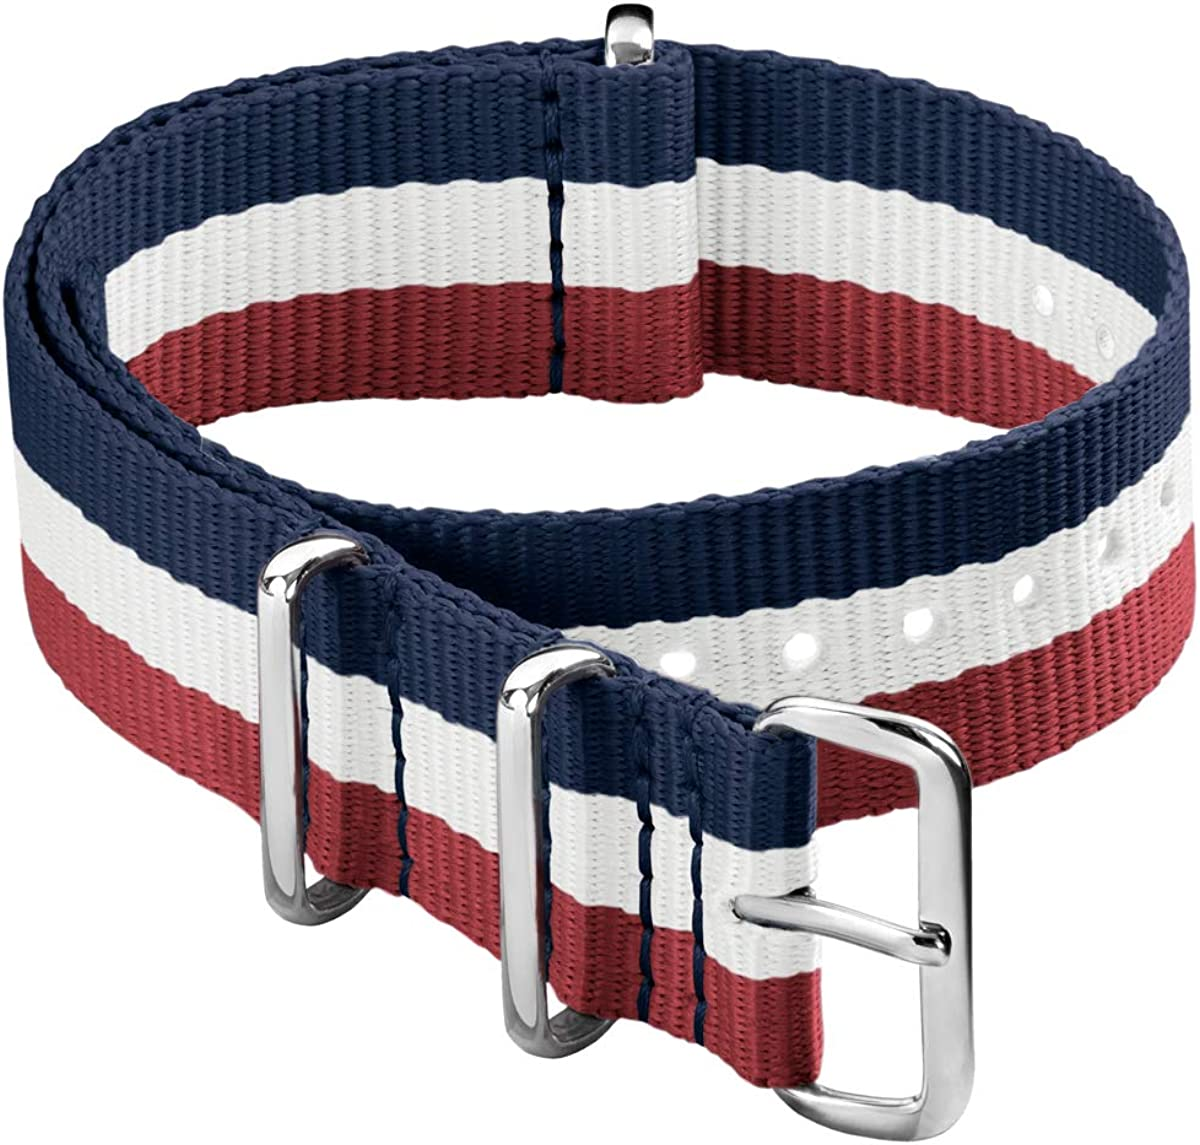 Archer Watch Straps - Classic Military Style Nylon Watch Strap - Choice of Color and Size (18mm, 20mm, 22mm, 24mm)